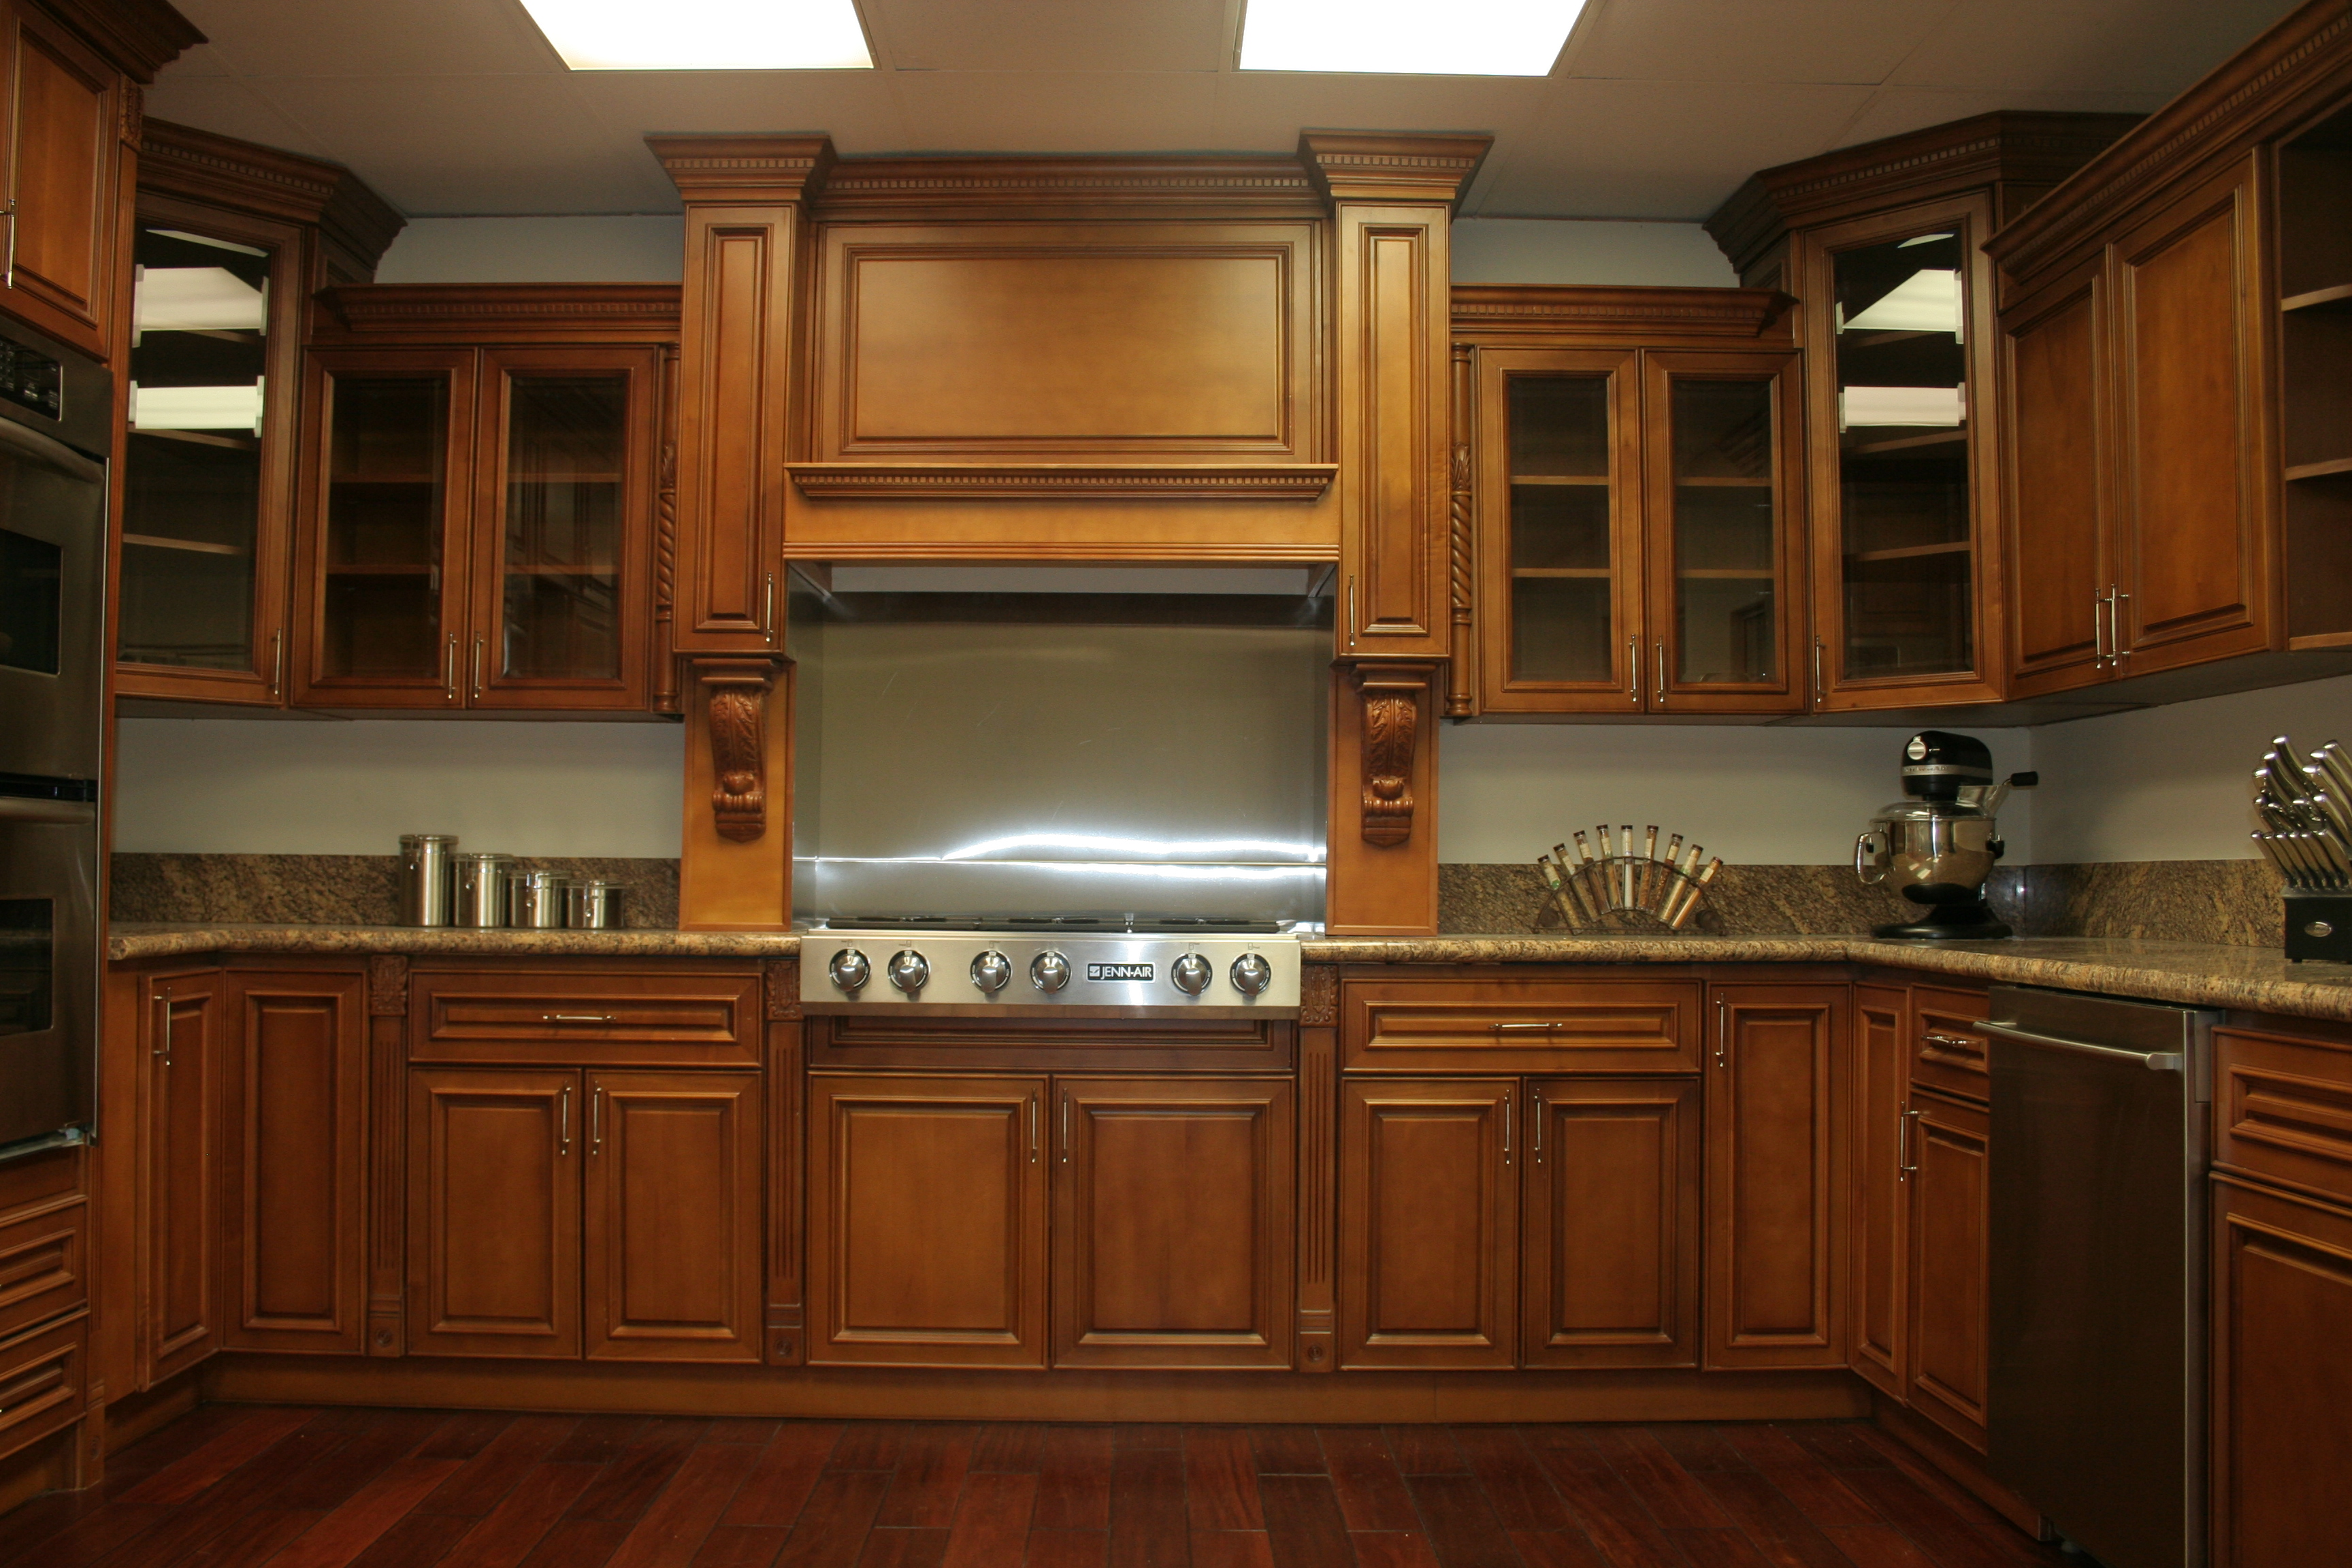 interior-ideas-deep-brown-wooden-maple-kitchen-cabinets ... on Kitchen Countertops With Maple Cabinets  id=69470